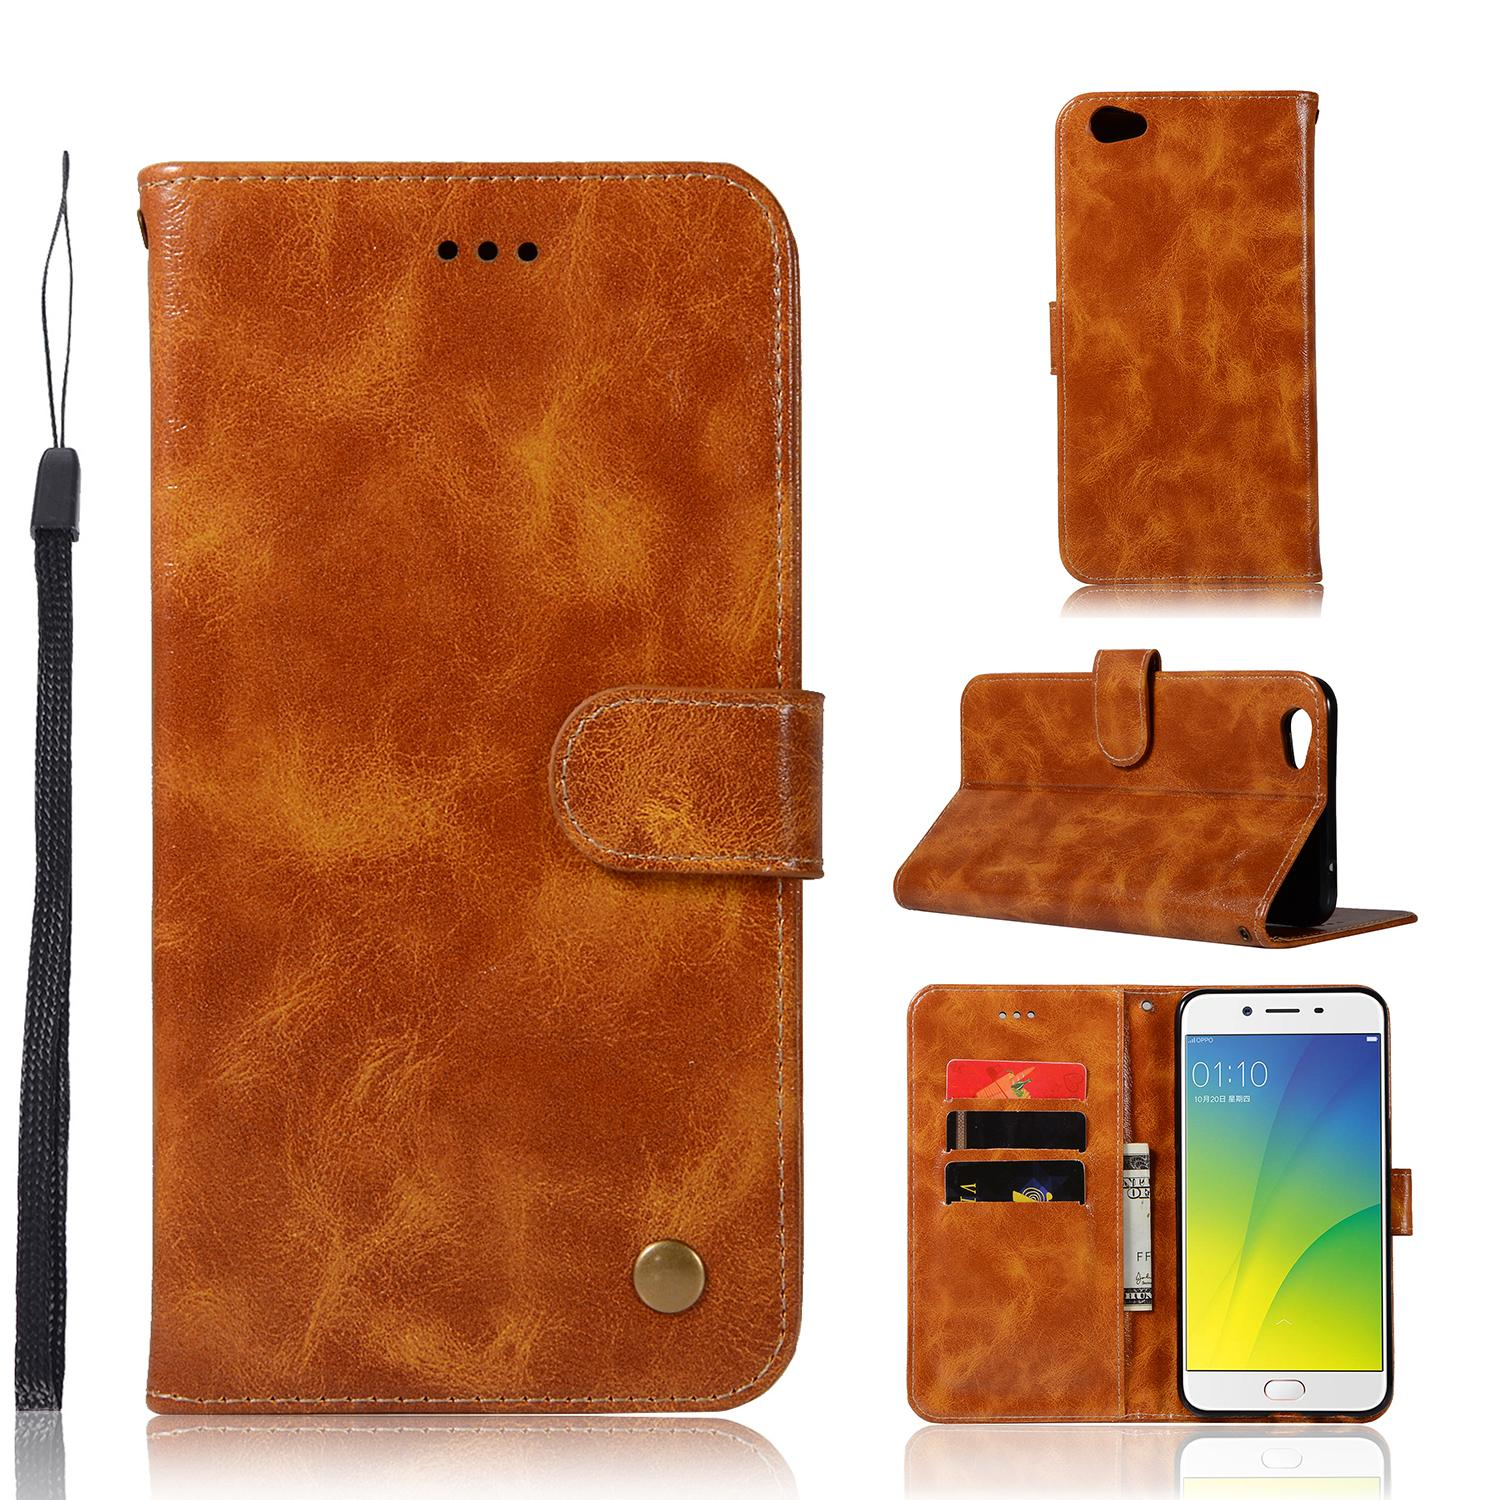 Casing For Oppo R9s,reto Leather Wallet Case Magnetic Double Card Holder Flip Cover By Life Goes On.